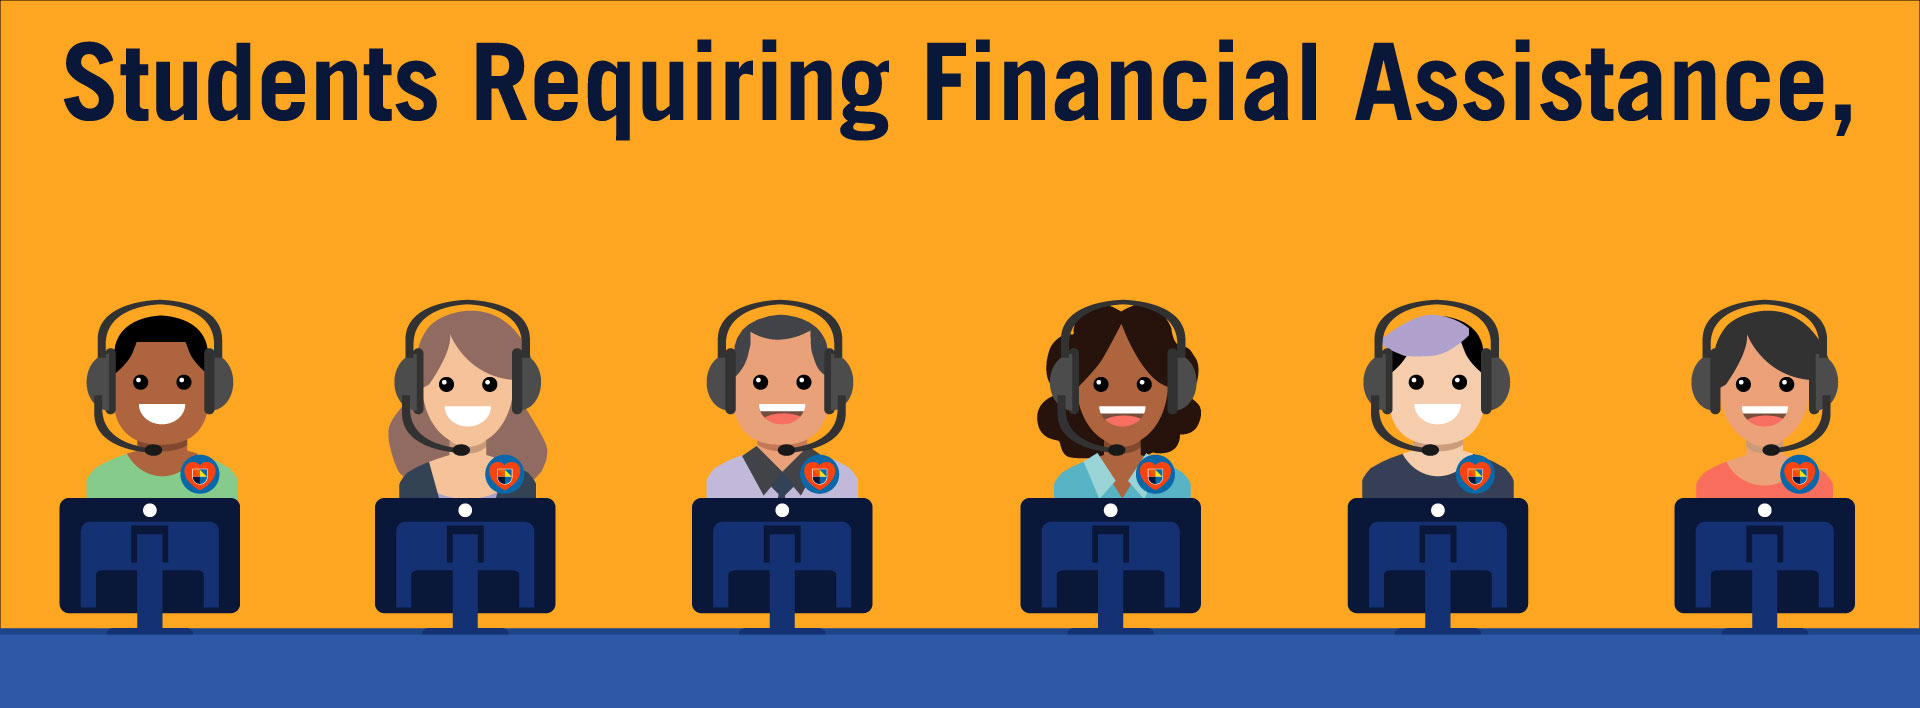 Students requiring financial assistance,